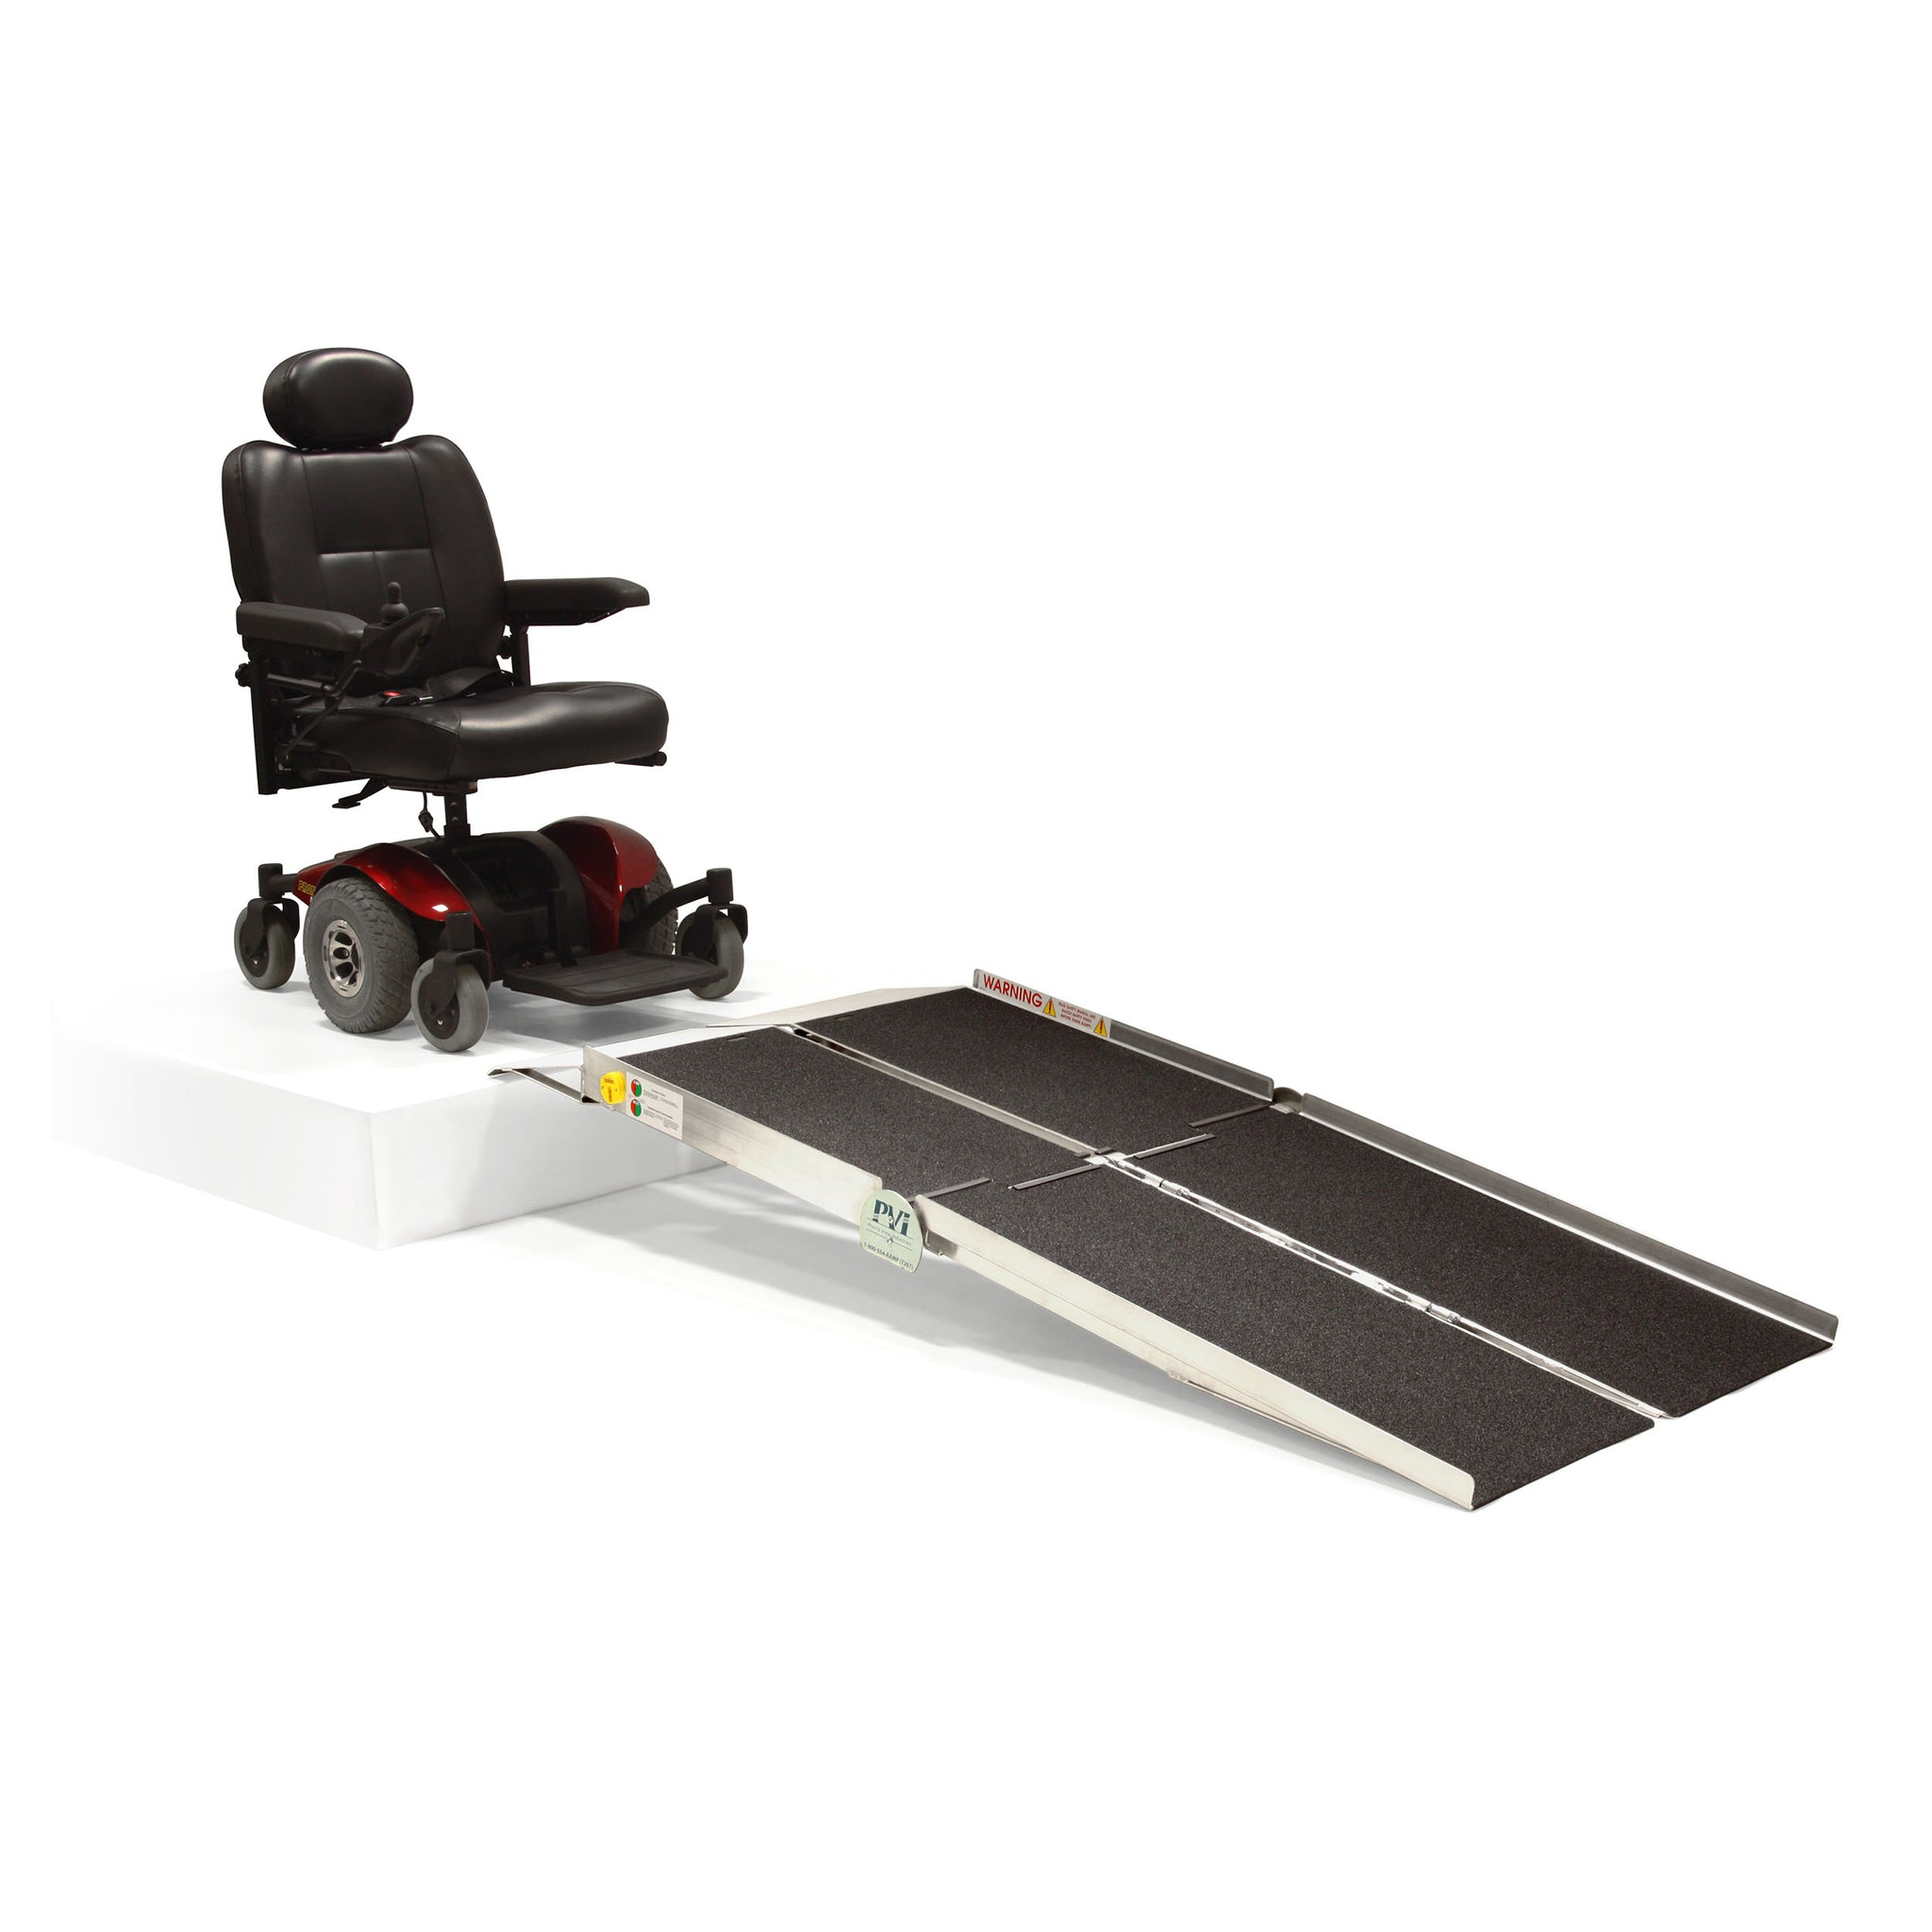 PVI Ramps Multifold Reach Wheelchair Ramp with Extended Lip